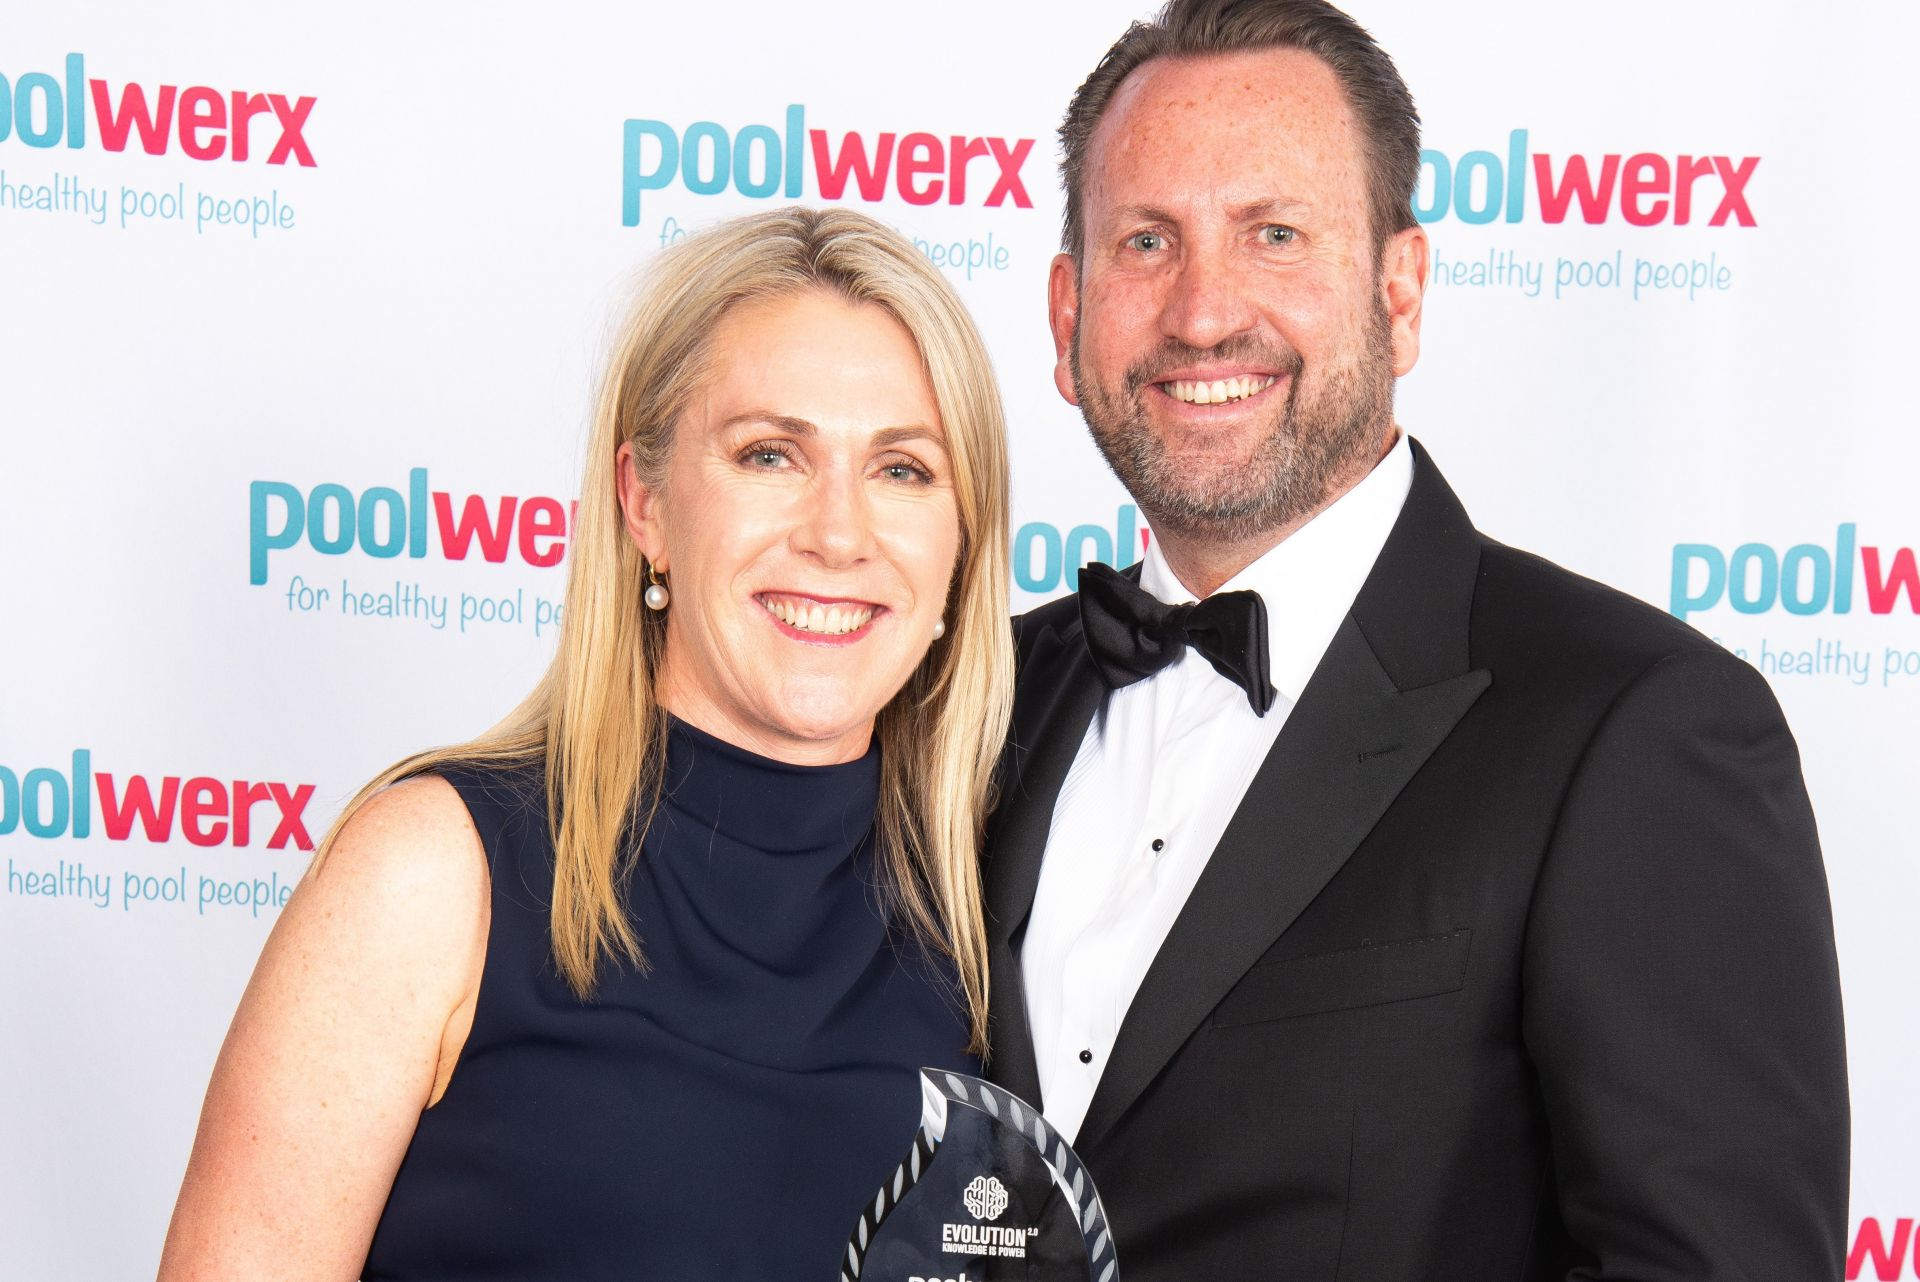 Poolwerx awards franchisees Prue and Malcolm Price | Inside Franchise Business